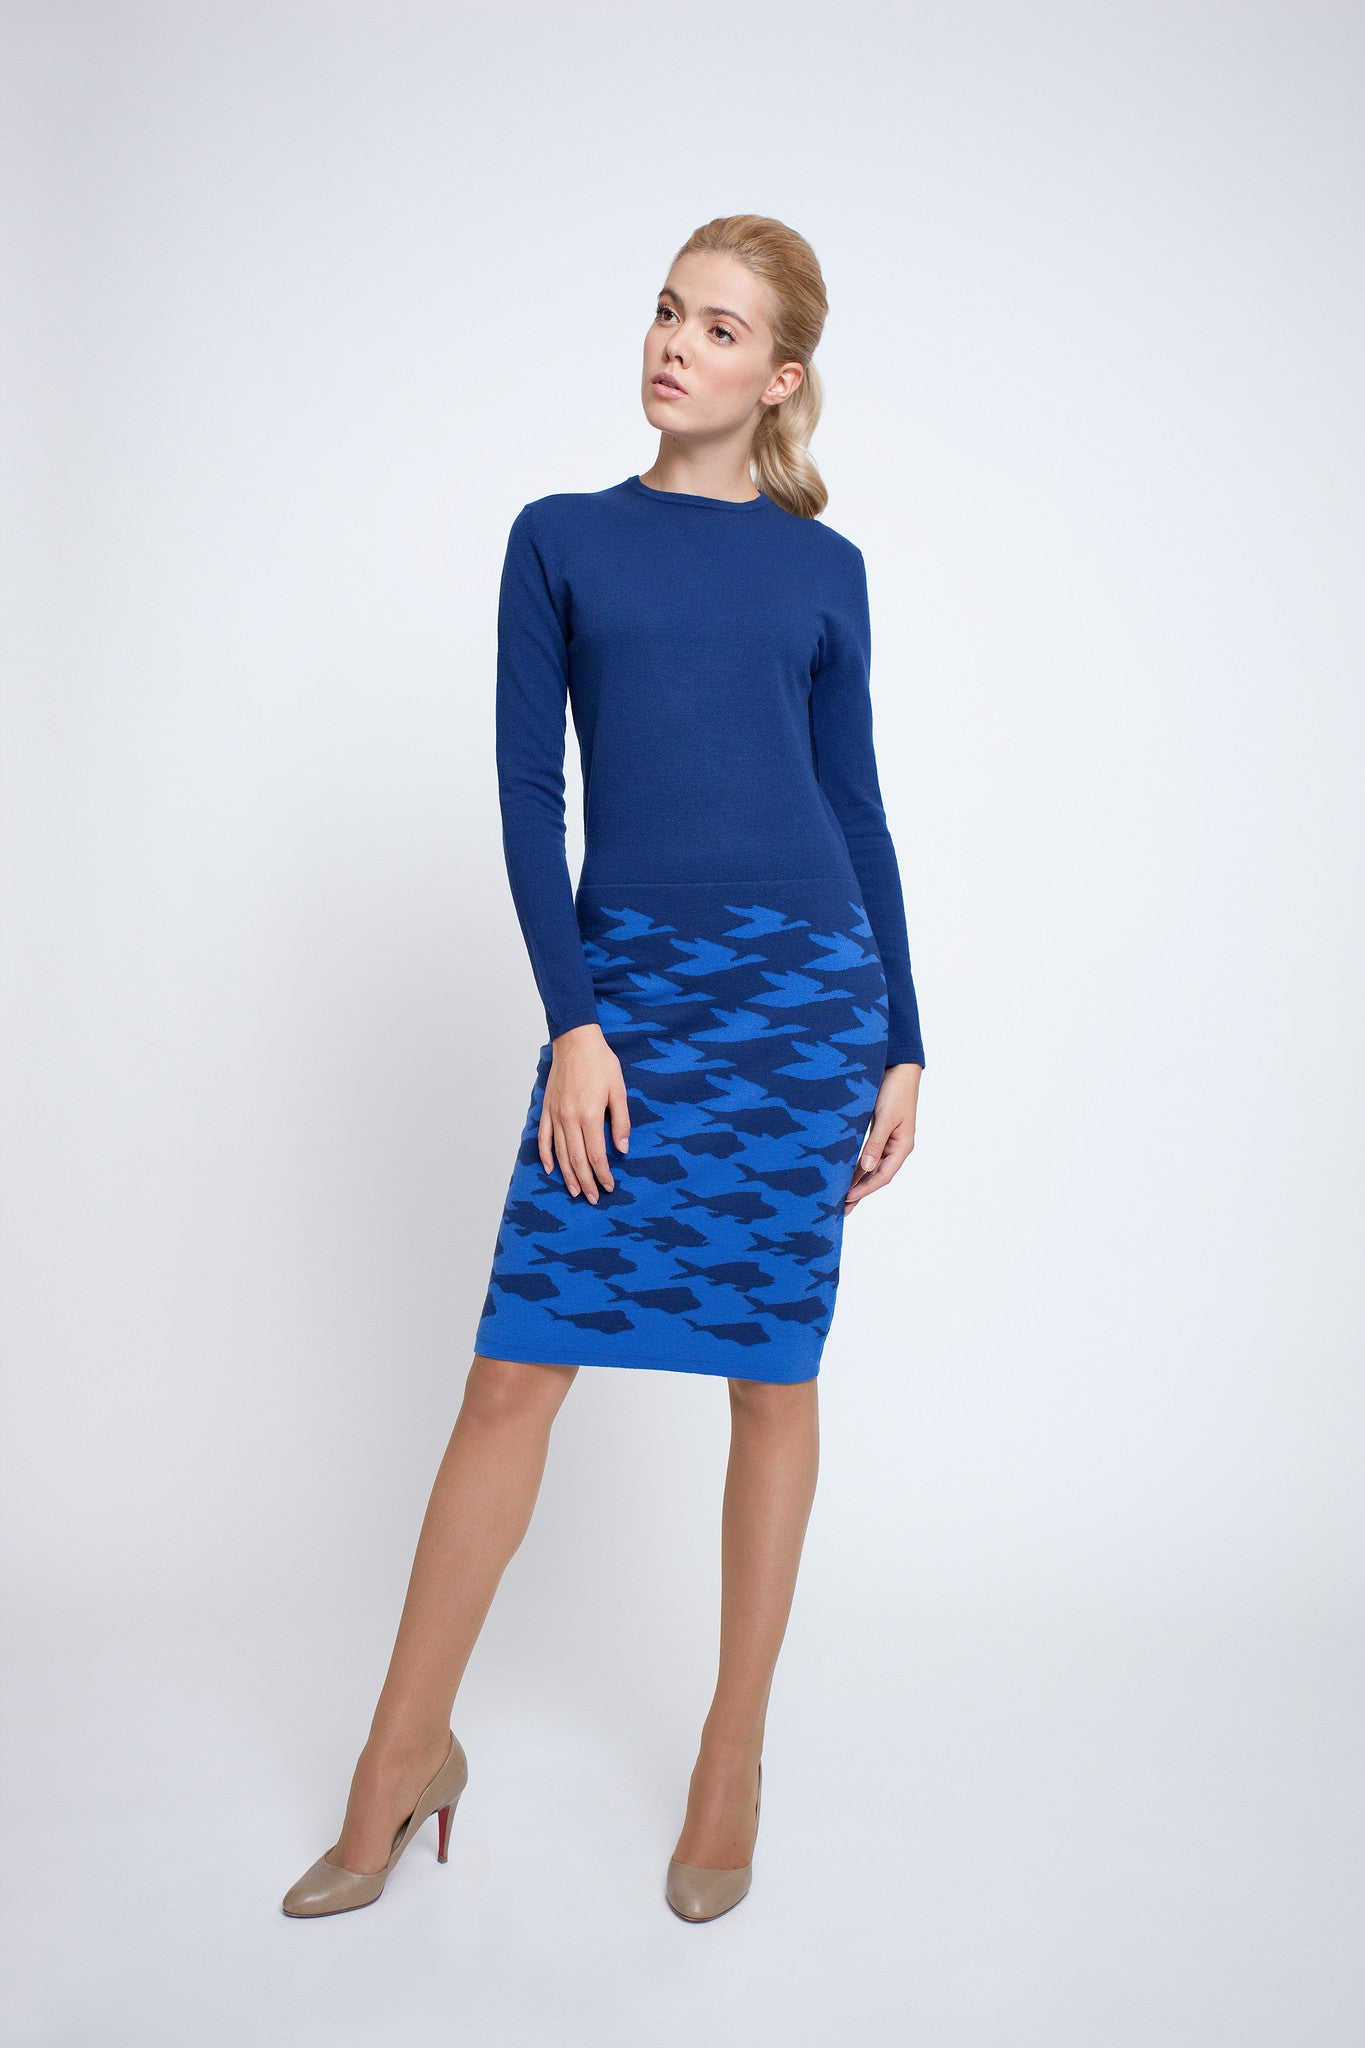 Two-tone blue jacquard knitted dress